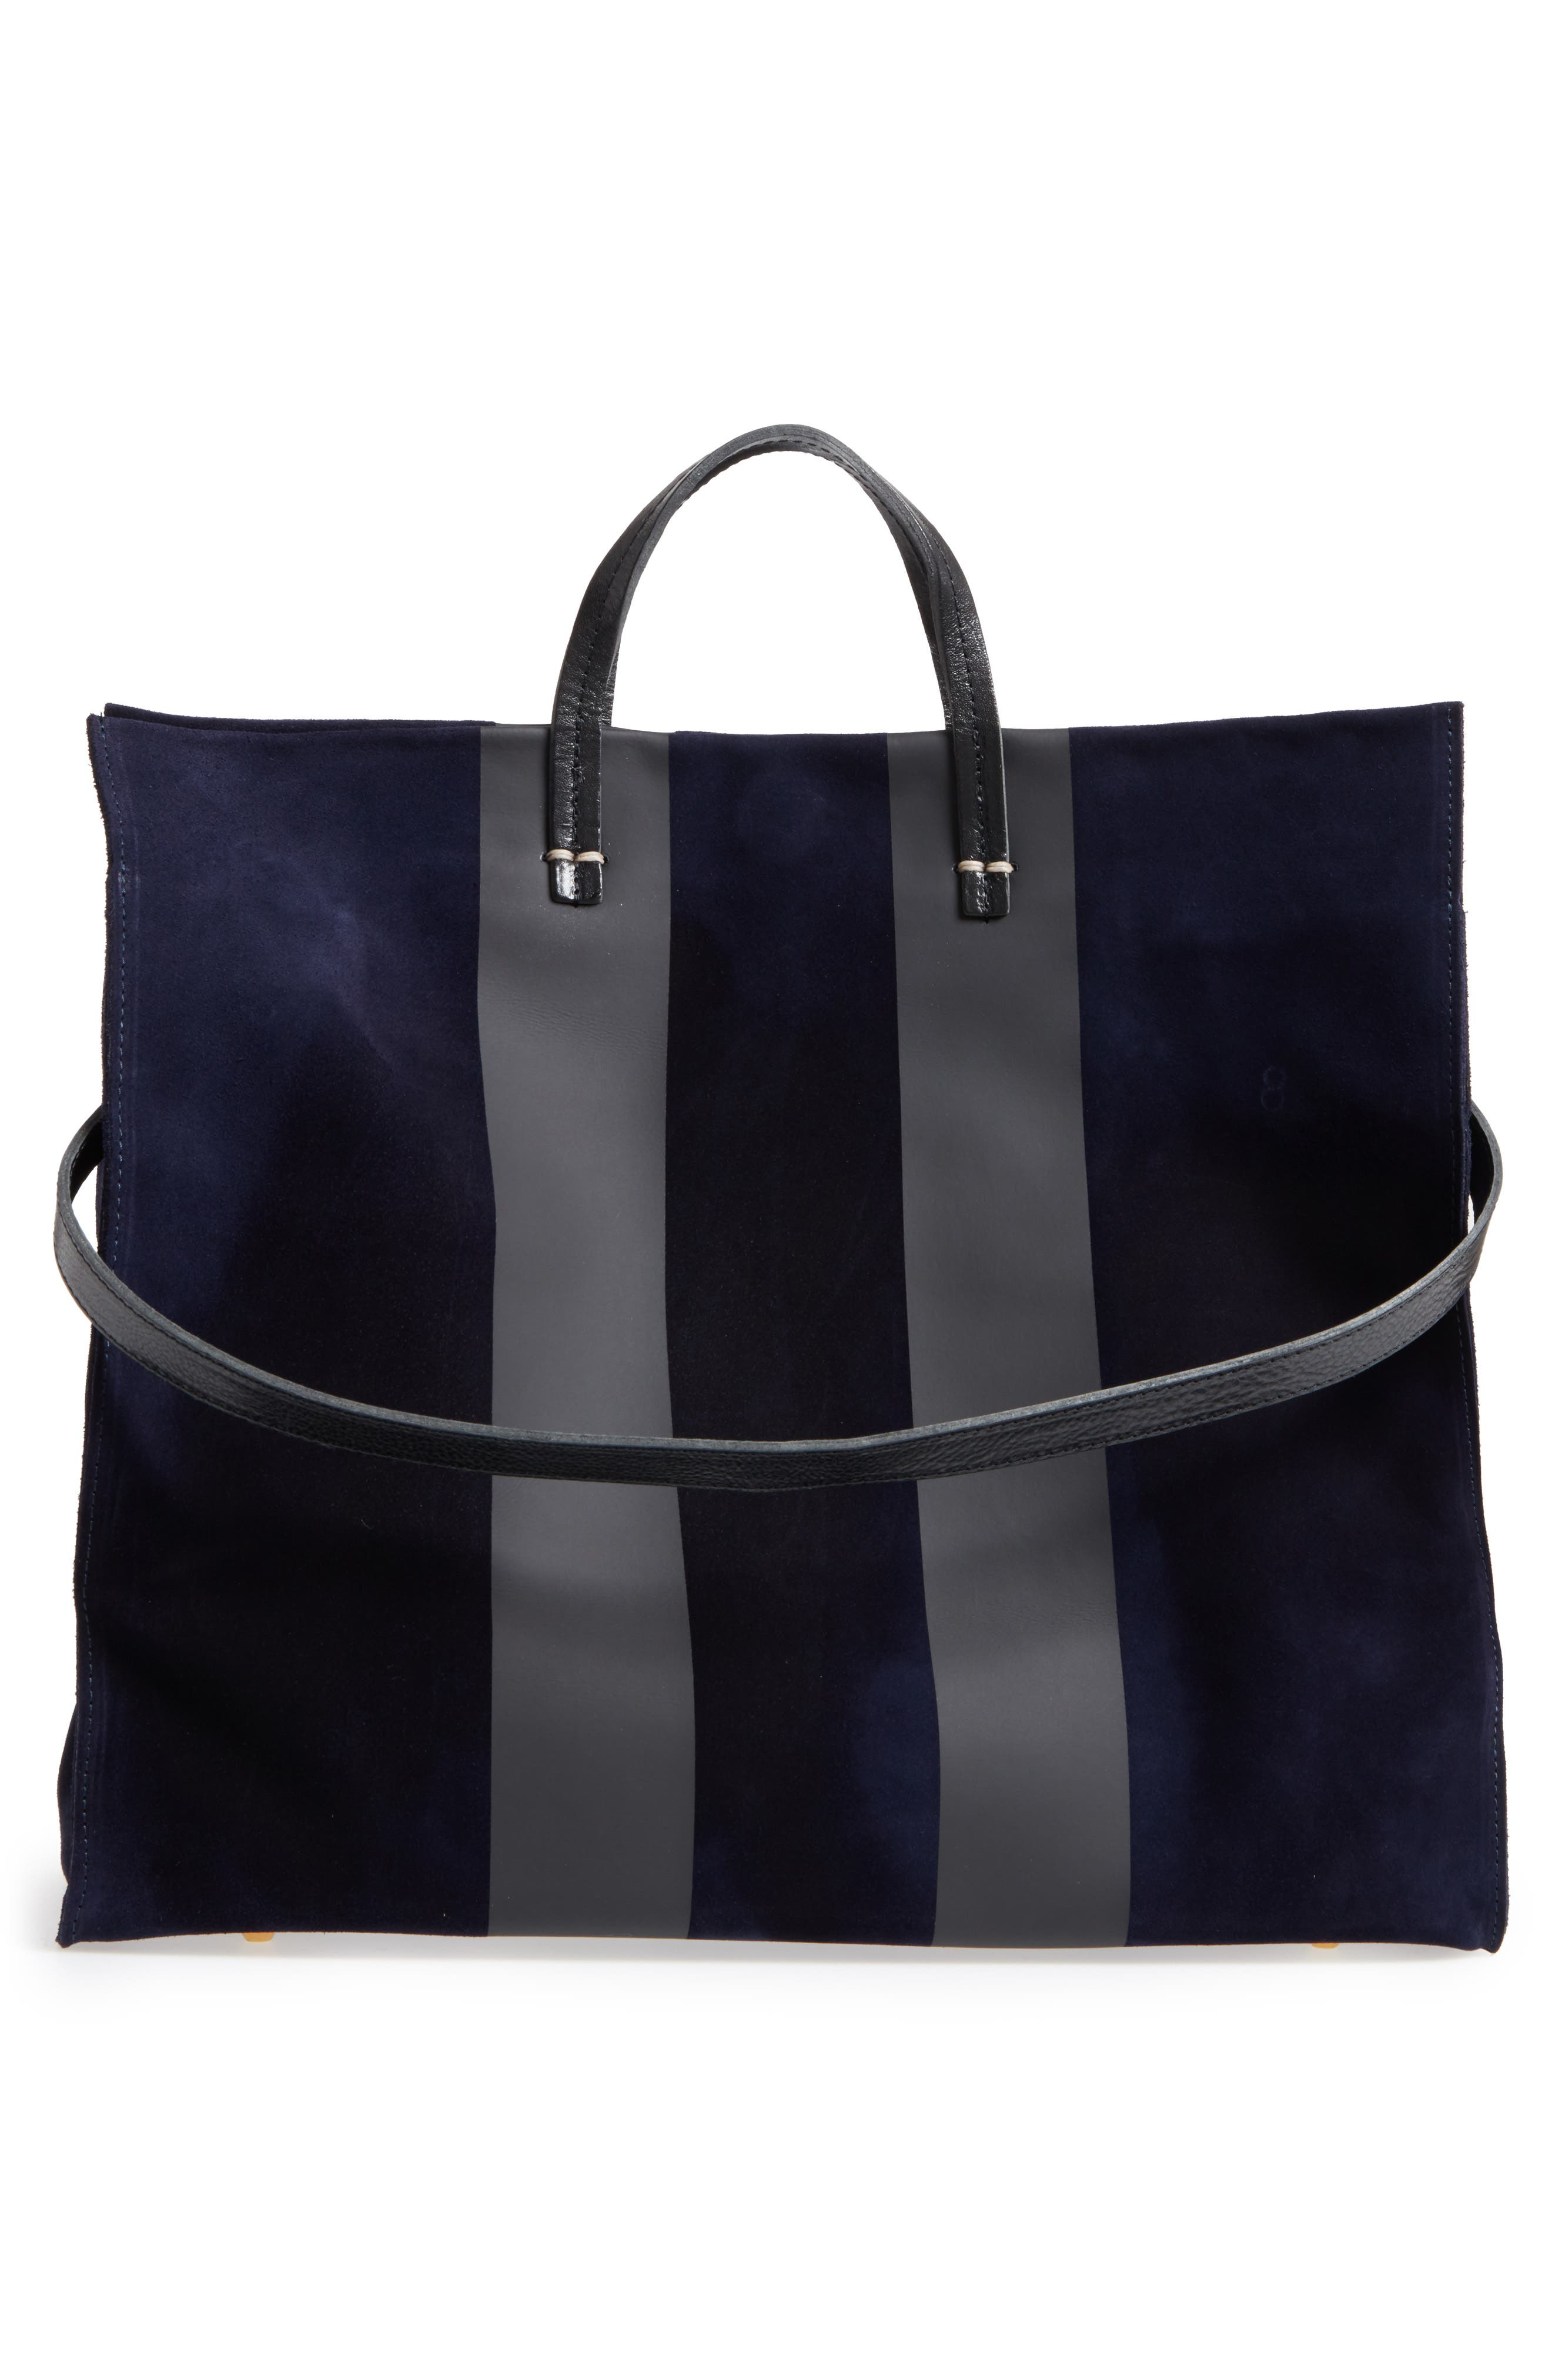 Simple Leather Tote,                             Alternate thumbnail 3, color,                             Navy Suede